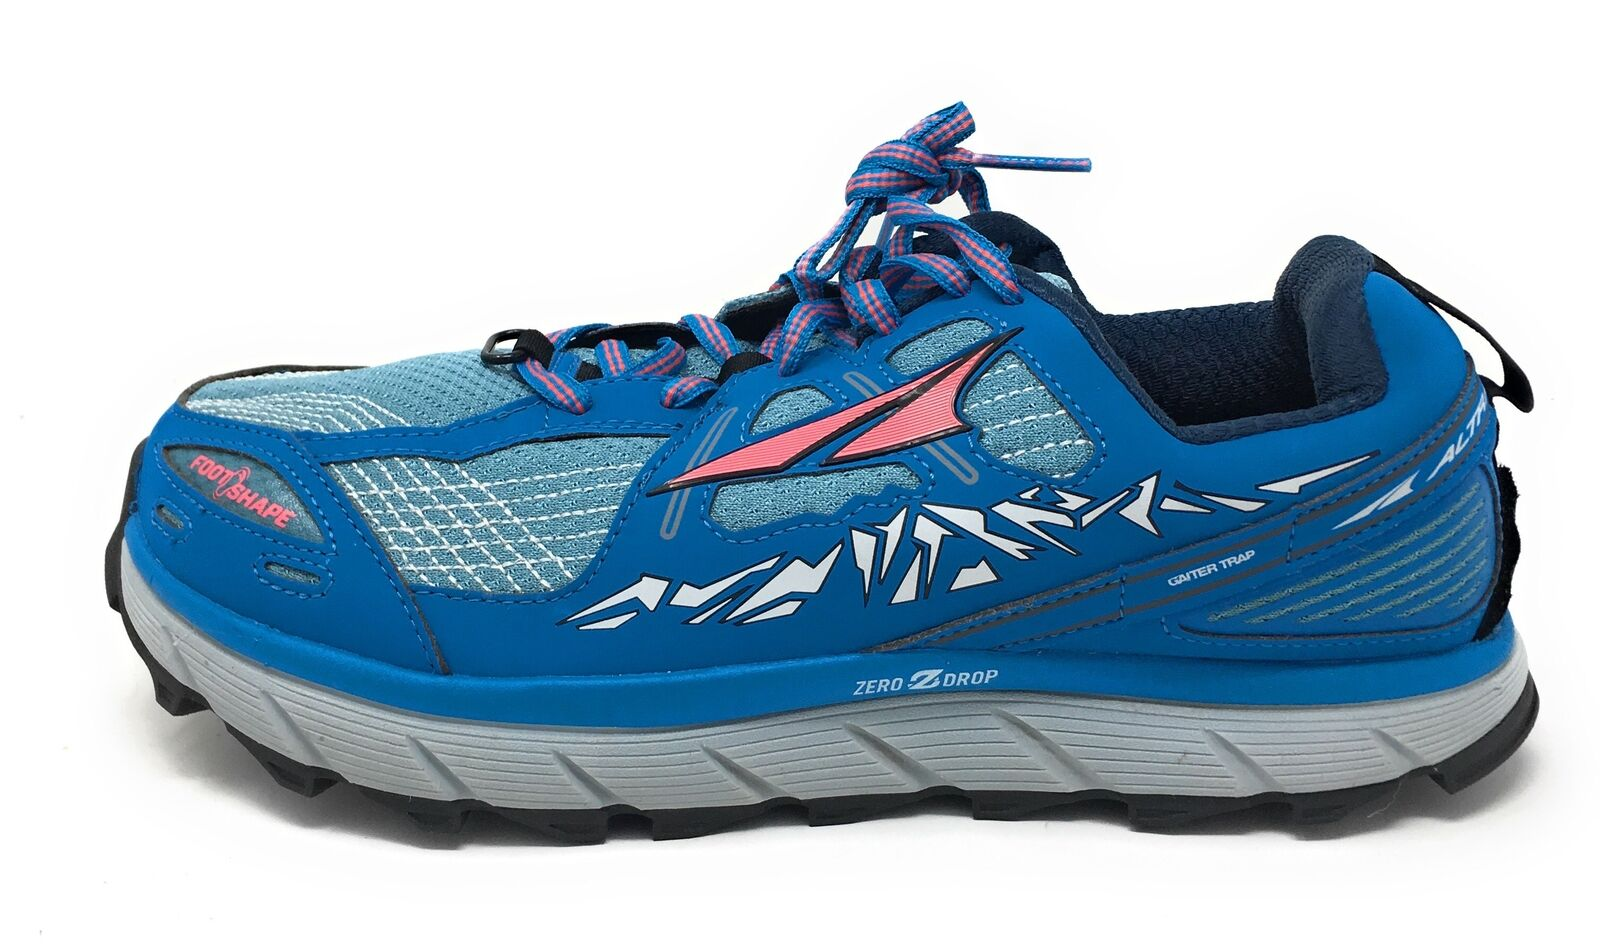 Altra Women's TIMP Trail Running shoes, bluee - 7.5 B(M) US - USED